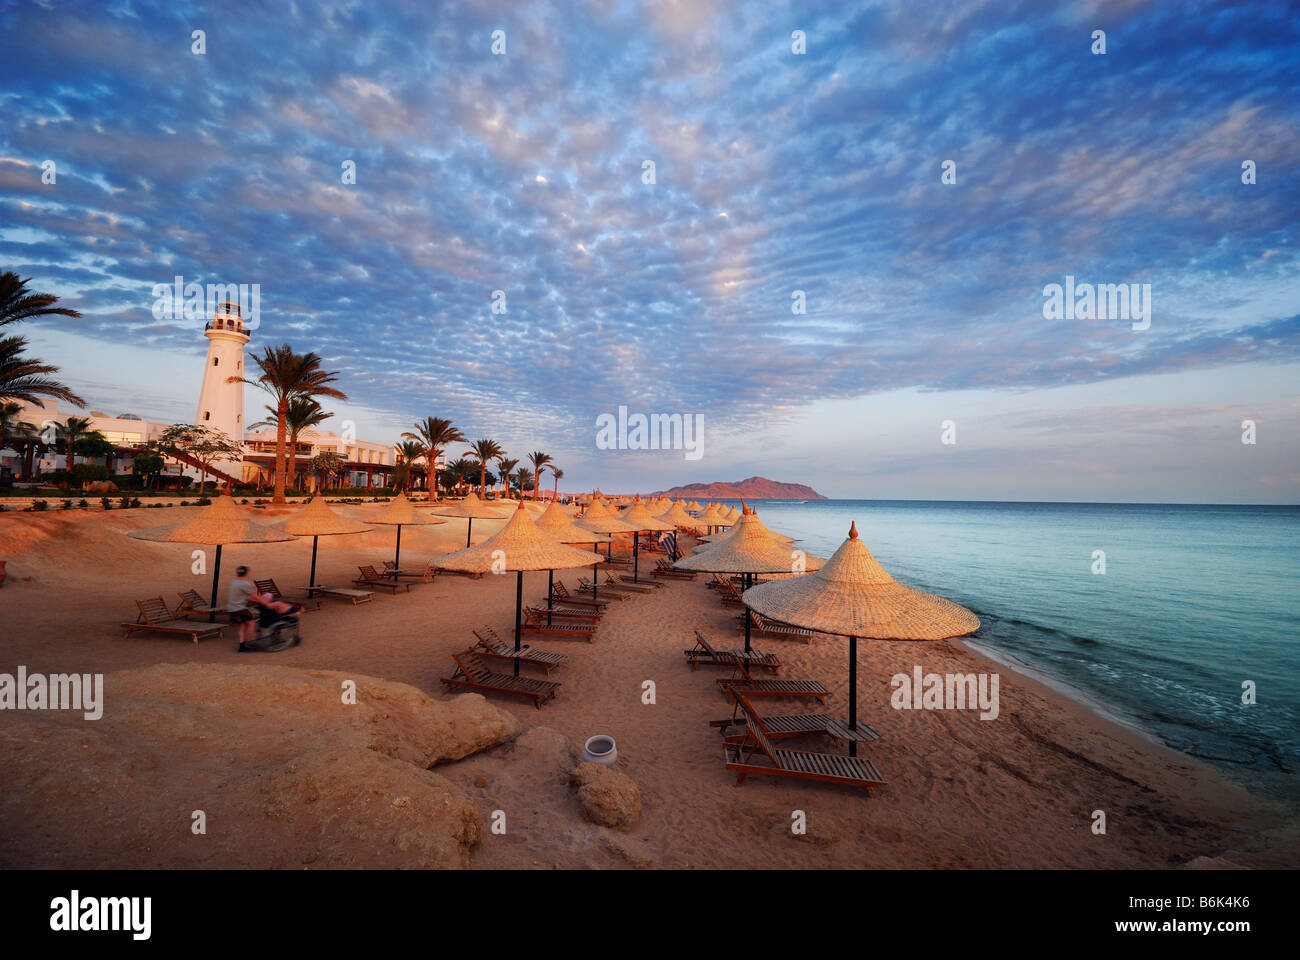 beautiful beach and ocean in sharm el sheikh egypt - Stock Image